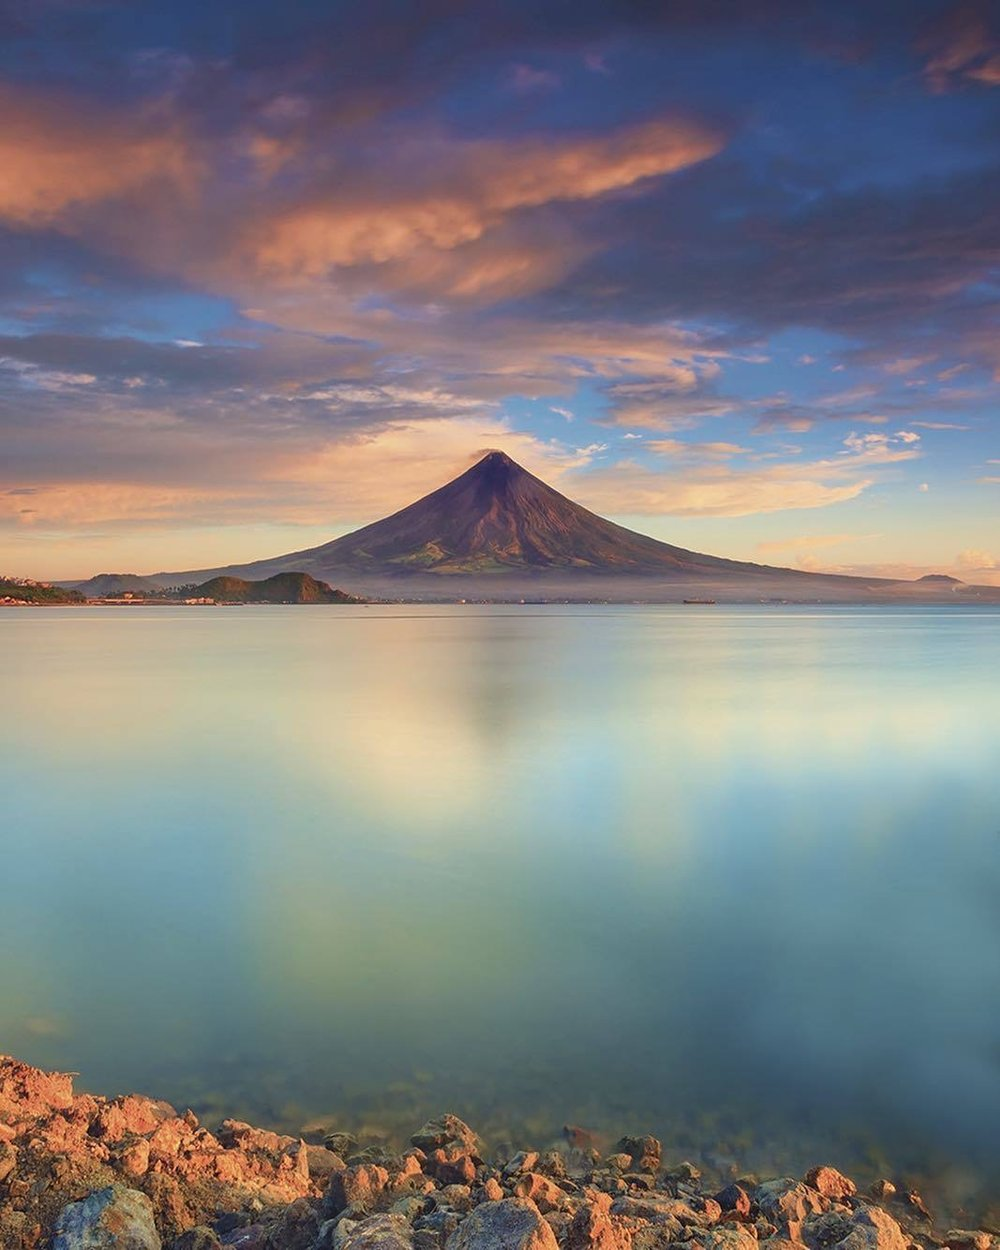 Mount Mayon Volcano Philippines